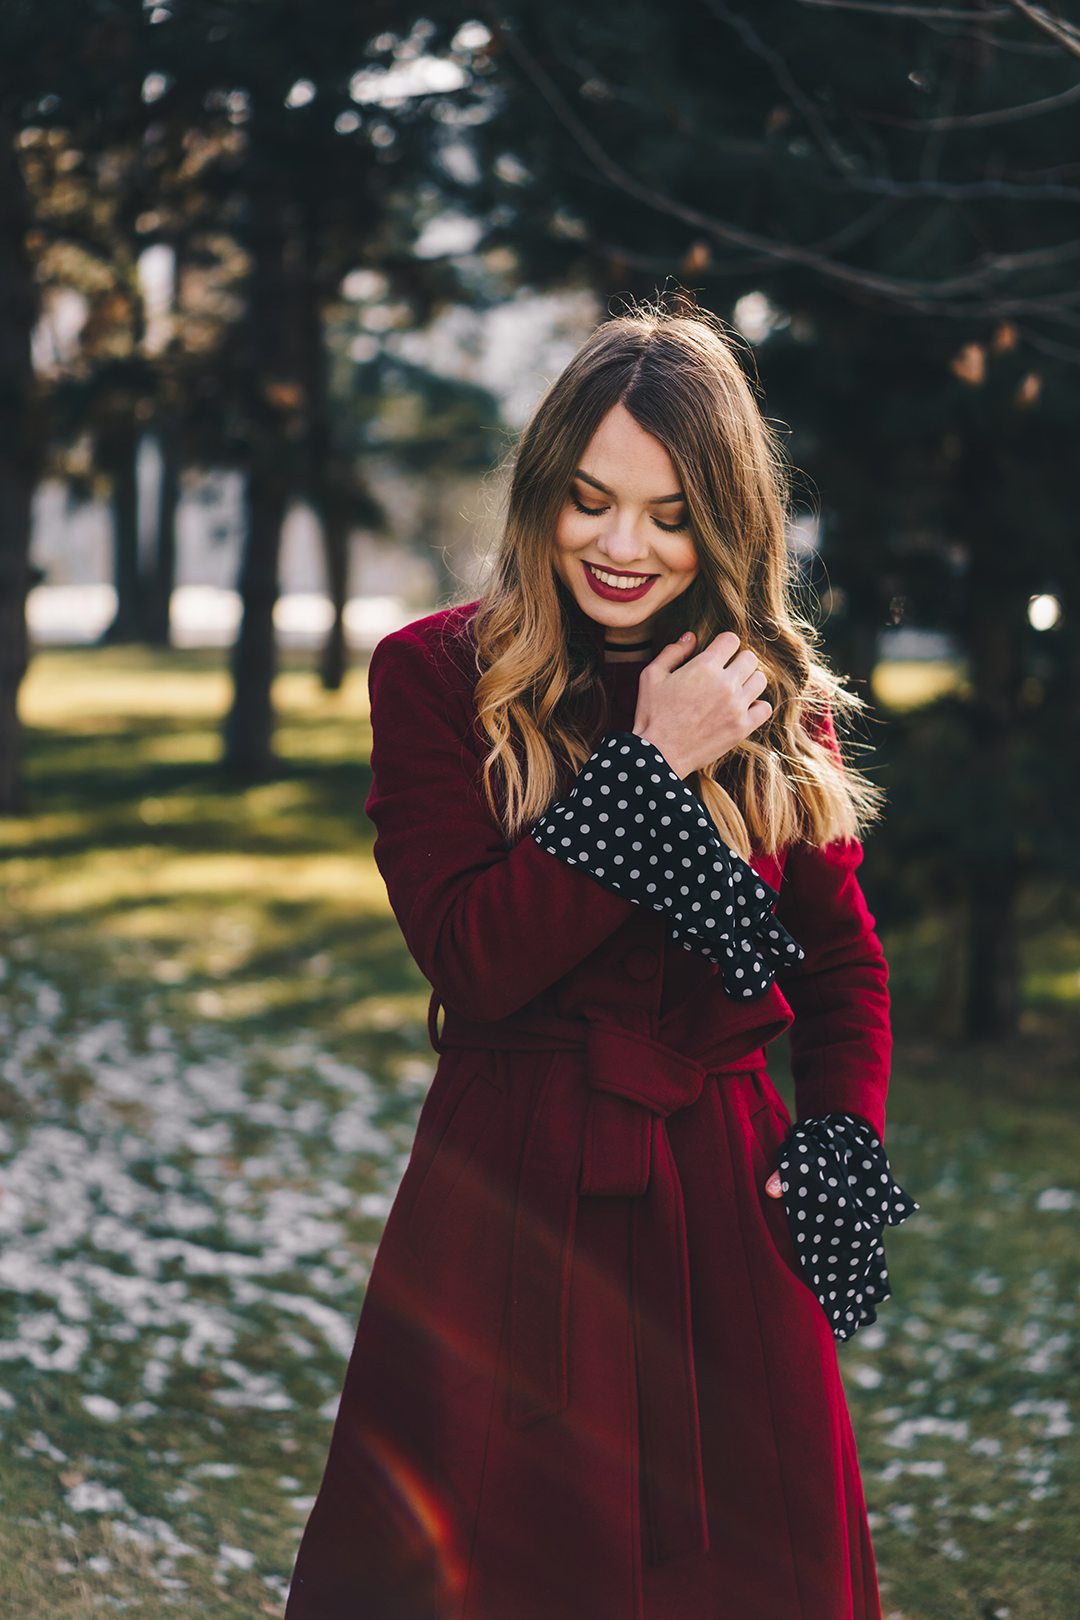 red-wool-coat-polka-dots-bell-sleeves-blouse-winter-outfit-9